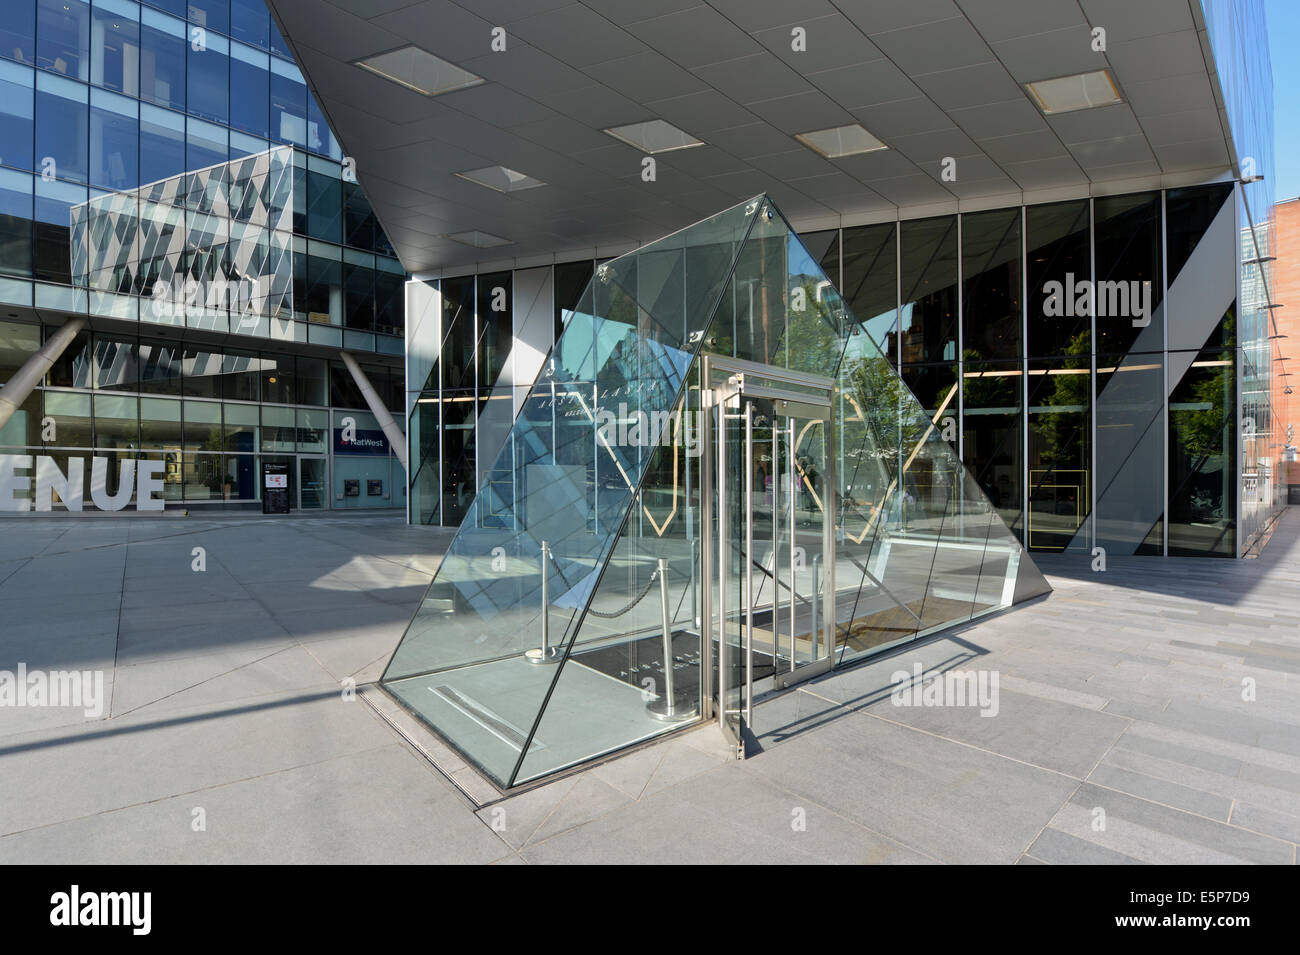 Australasia bar and restaurant located on 1 The Avenue, Spinningfields near Deansgate in Manchester, UK. - Stock Image